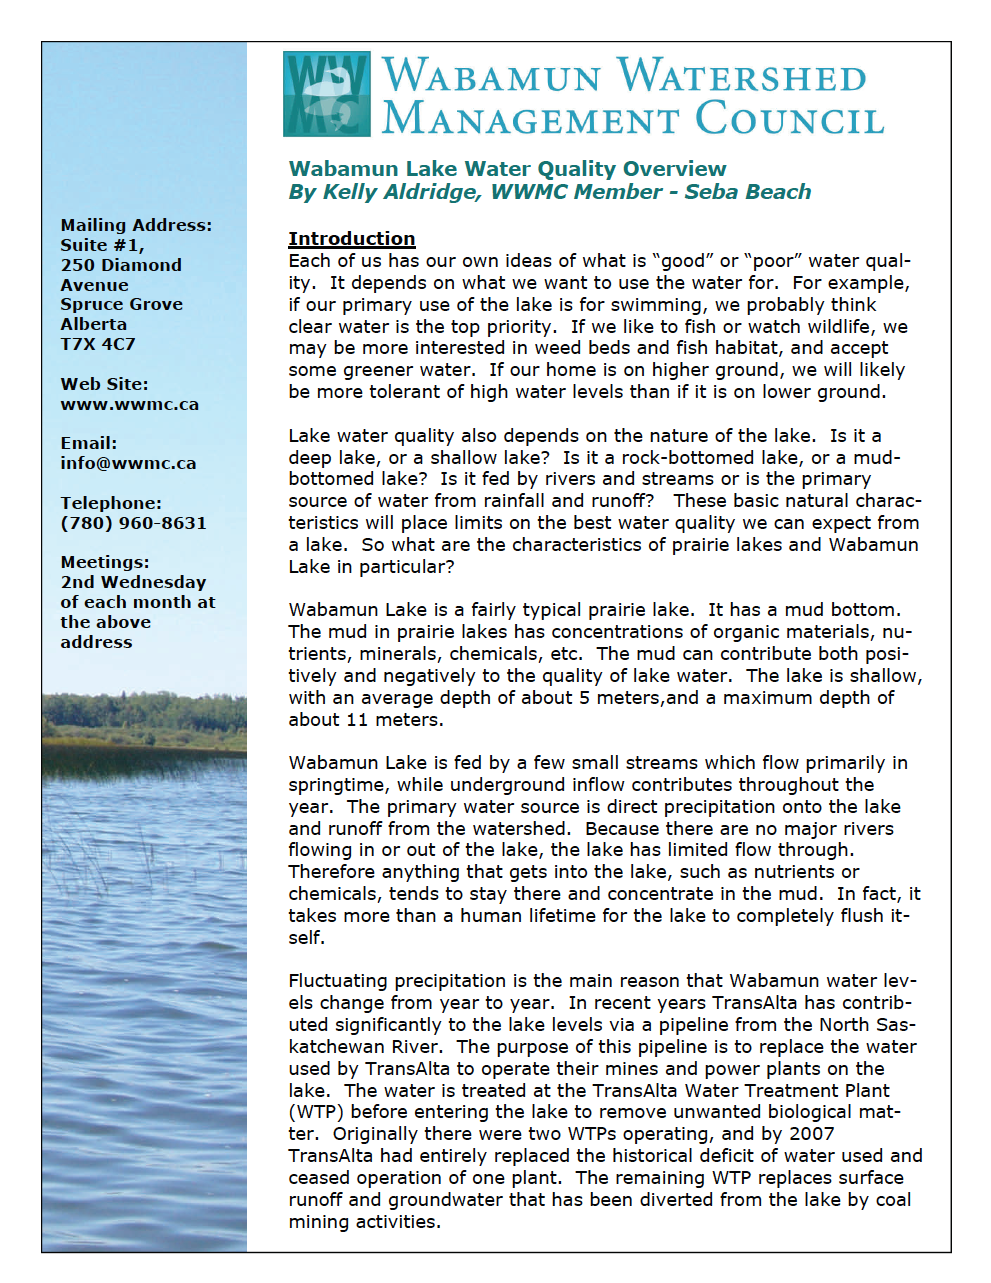 WWMC Water Quality Overview.png